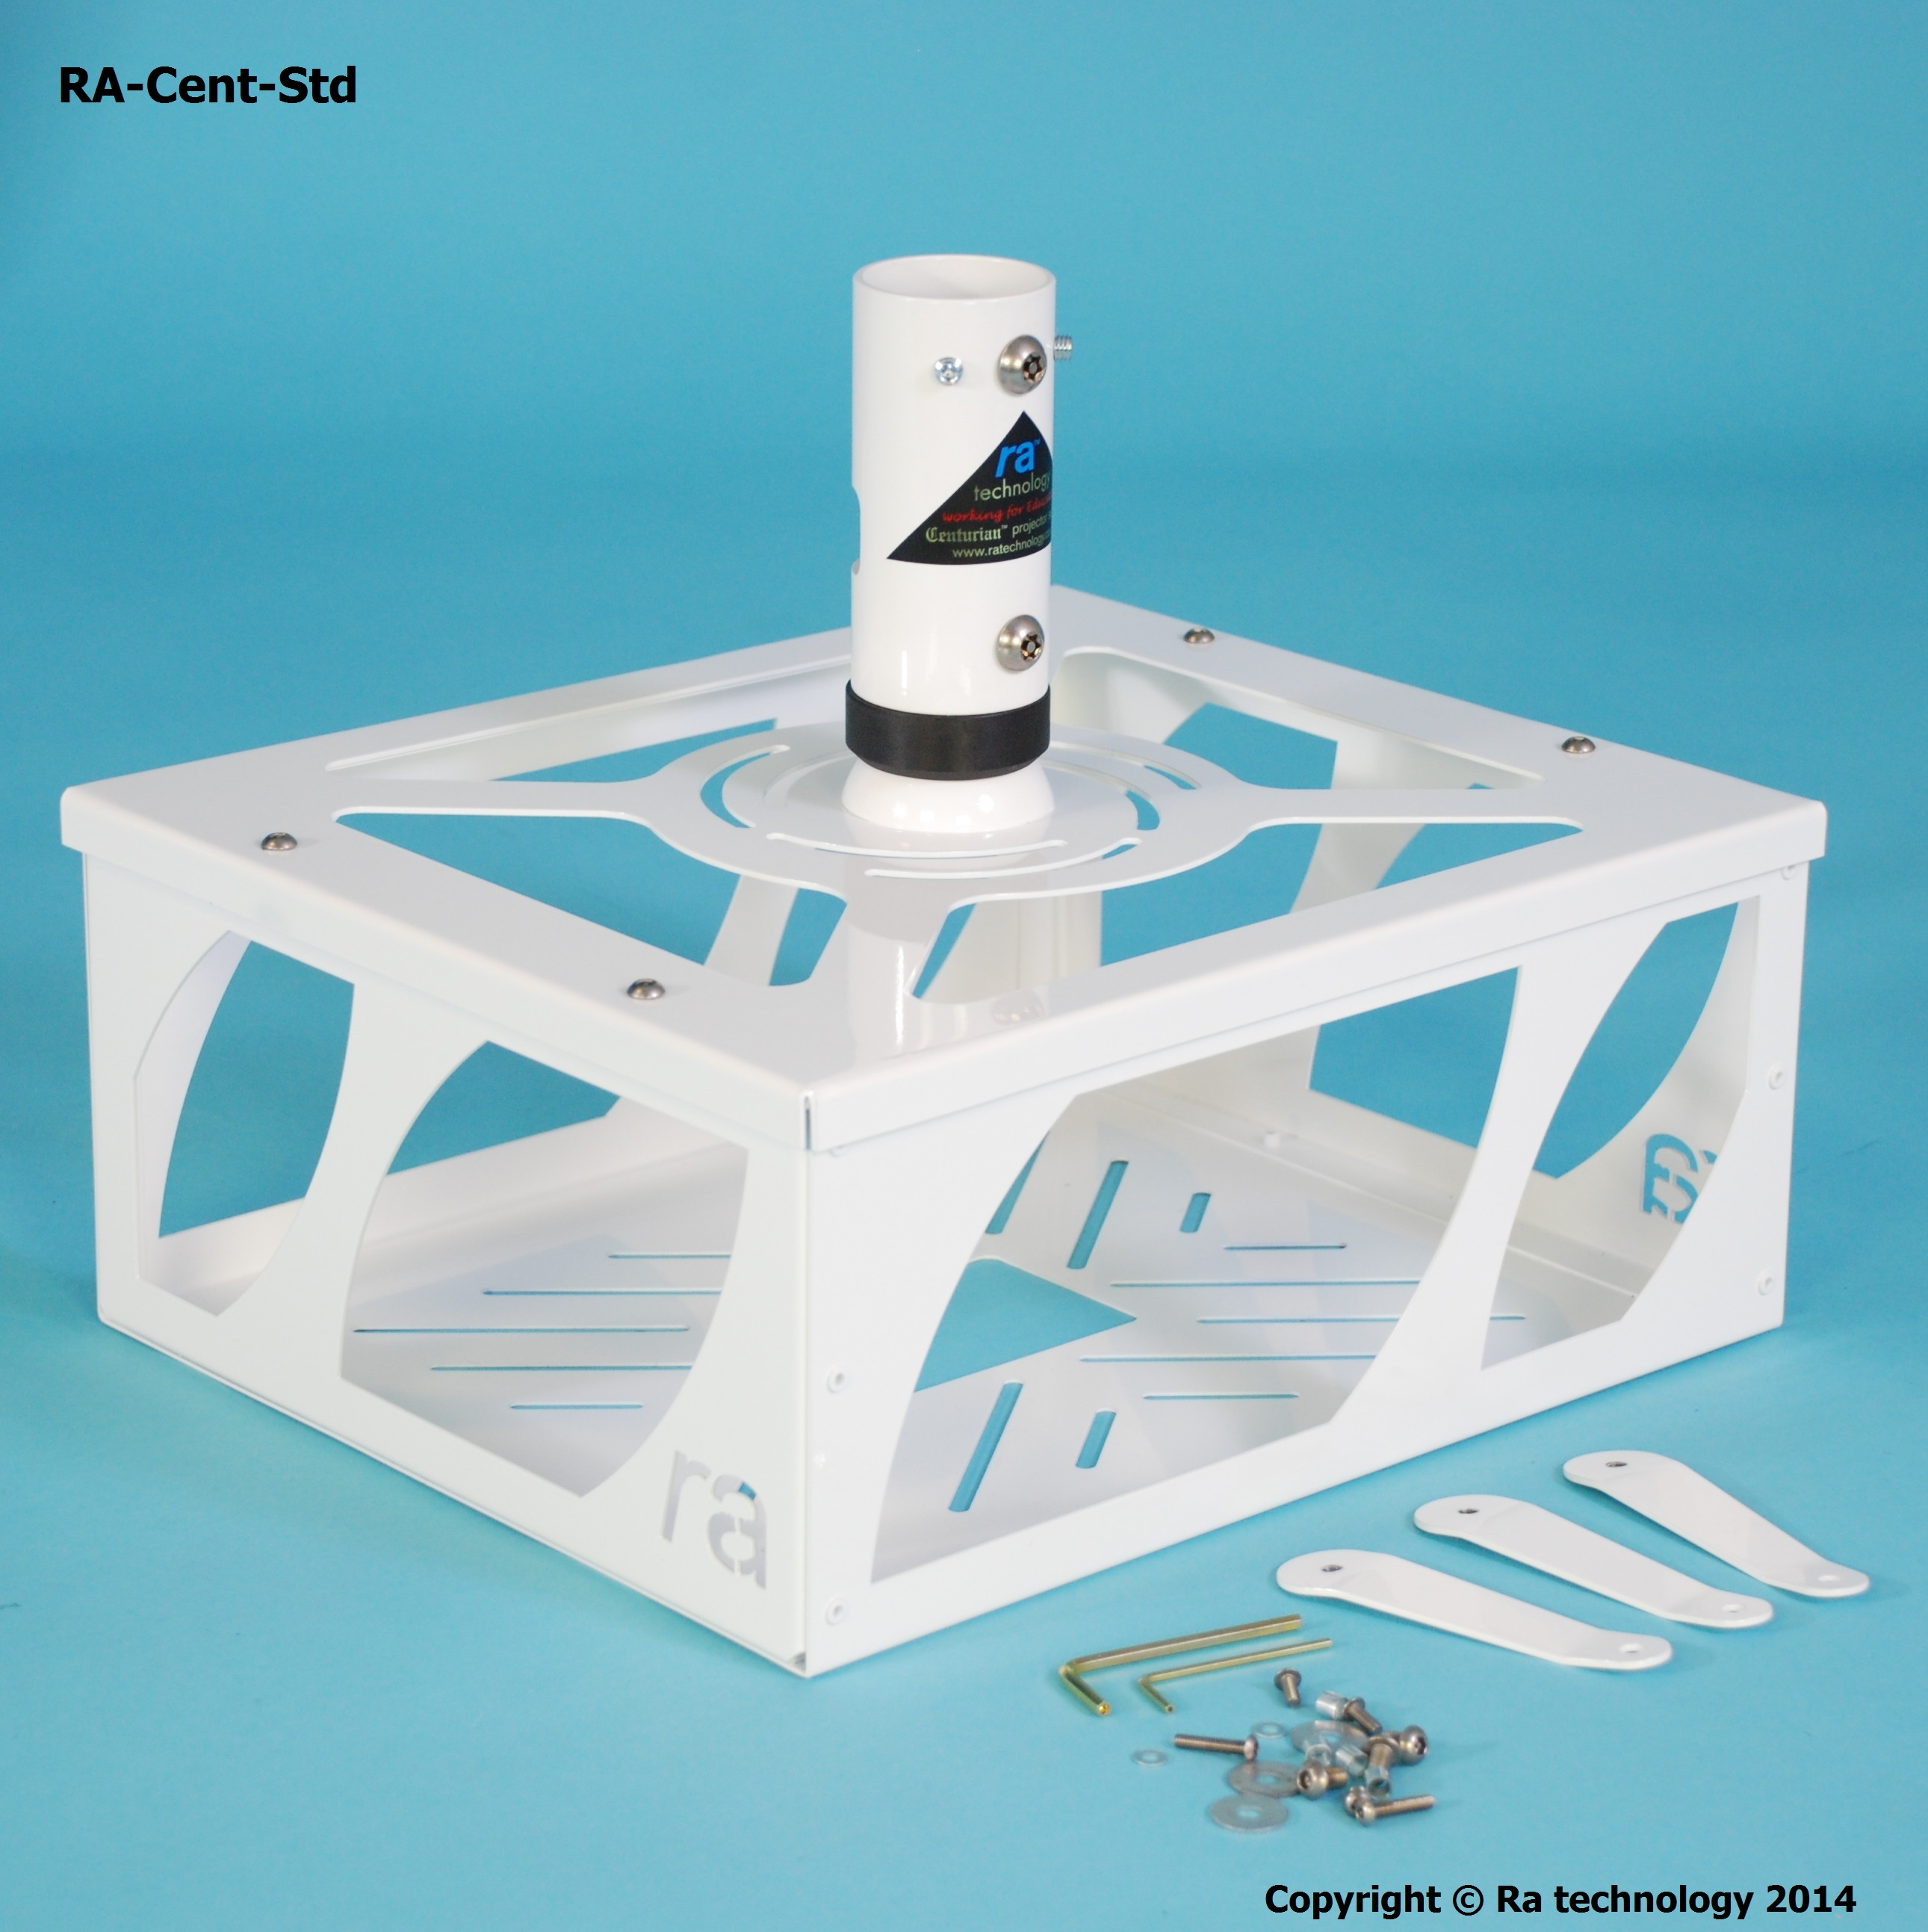 RA Centurian Standard Entrapment RA Cent Std Projector Cage RA Cent Std   RA Technology Projector mounts and cages